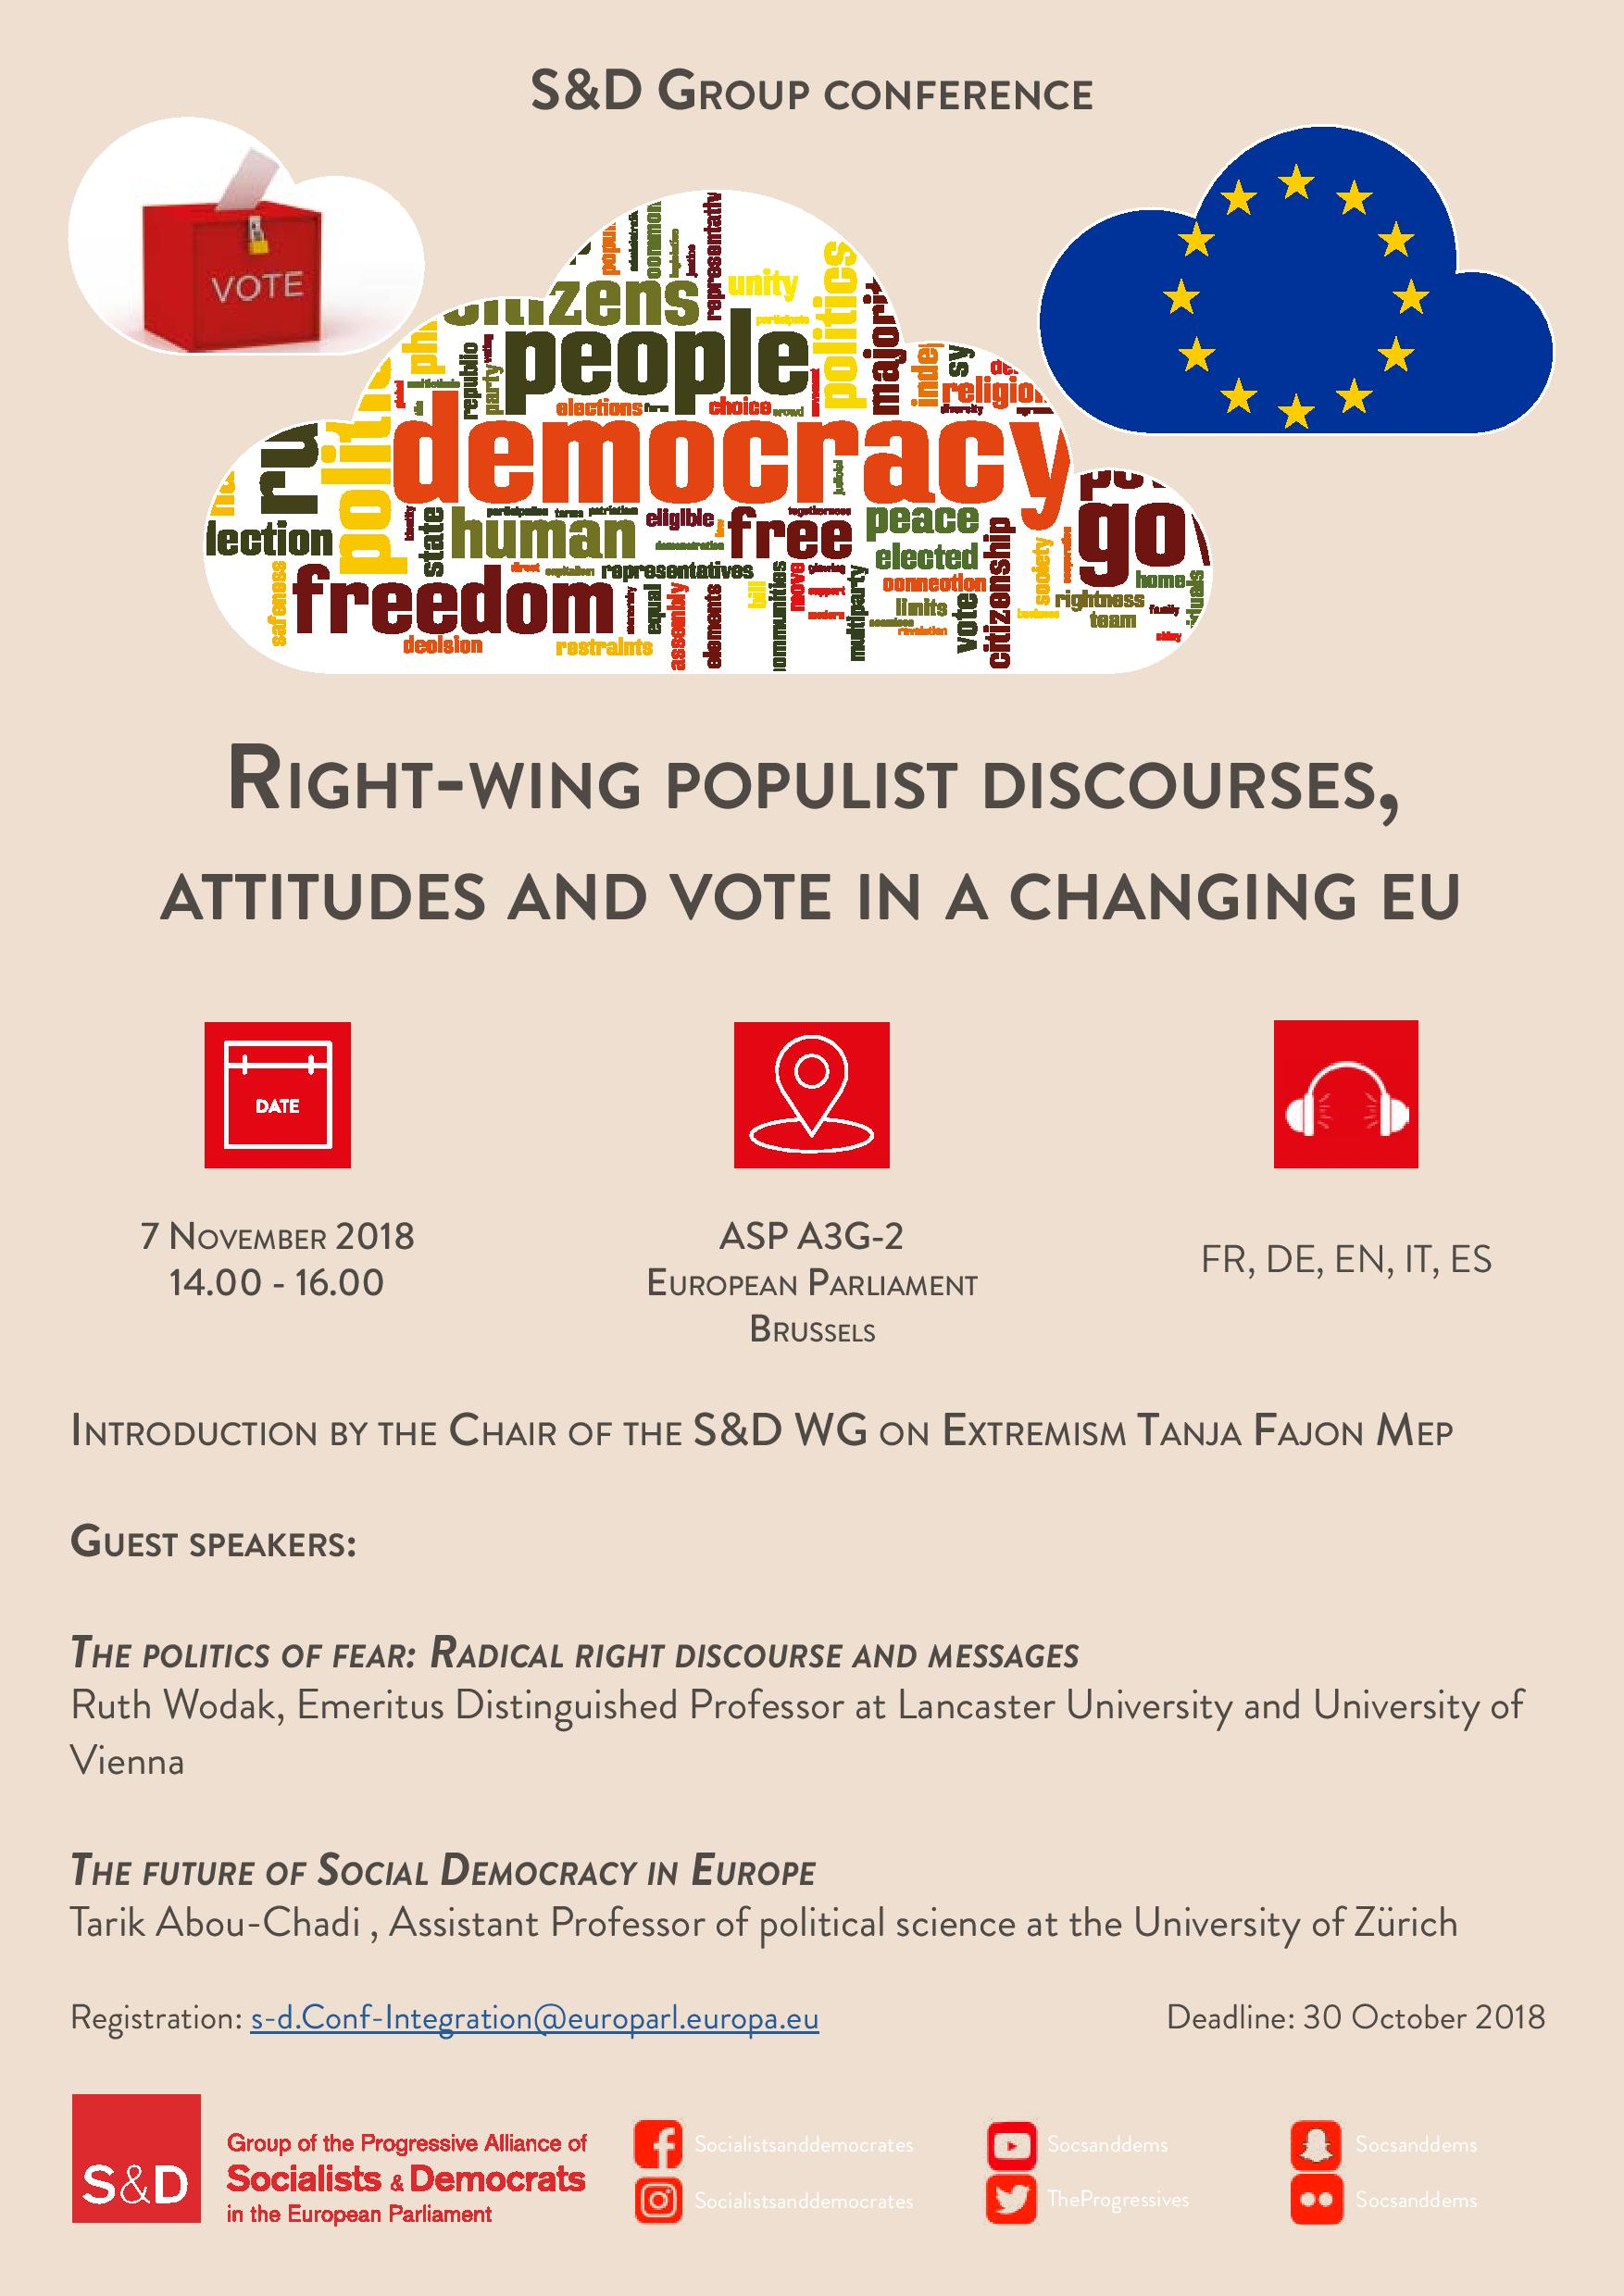 S&D confereence - Right wing populist discourses